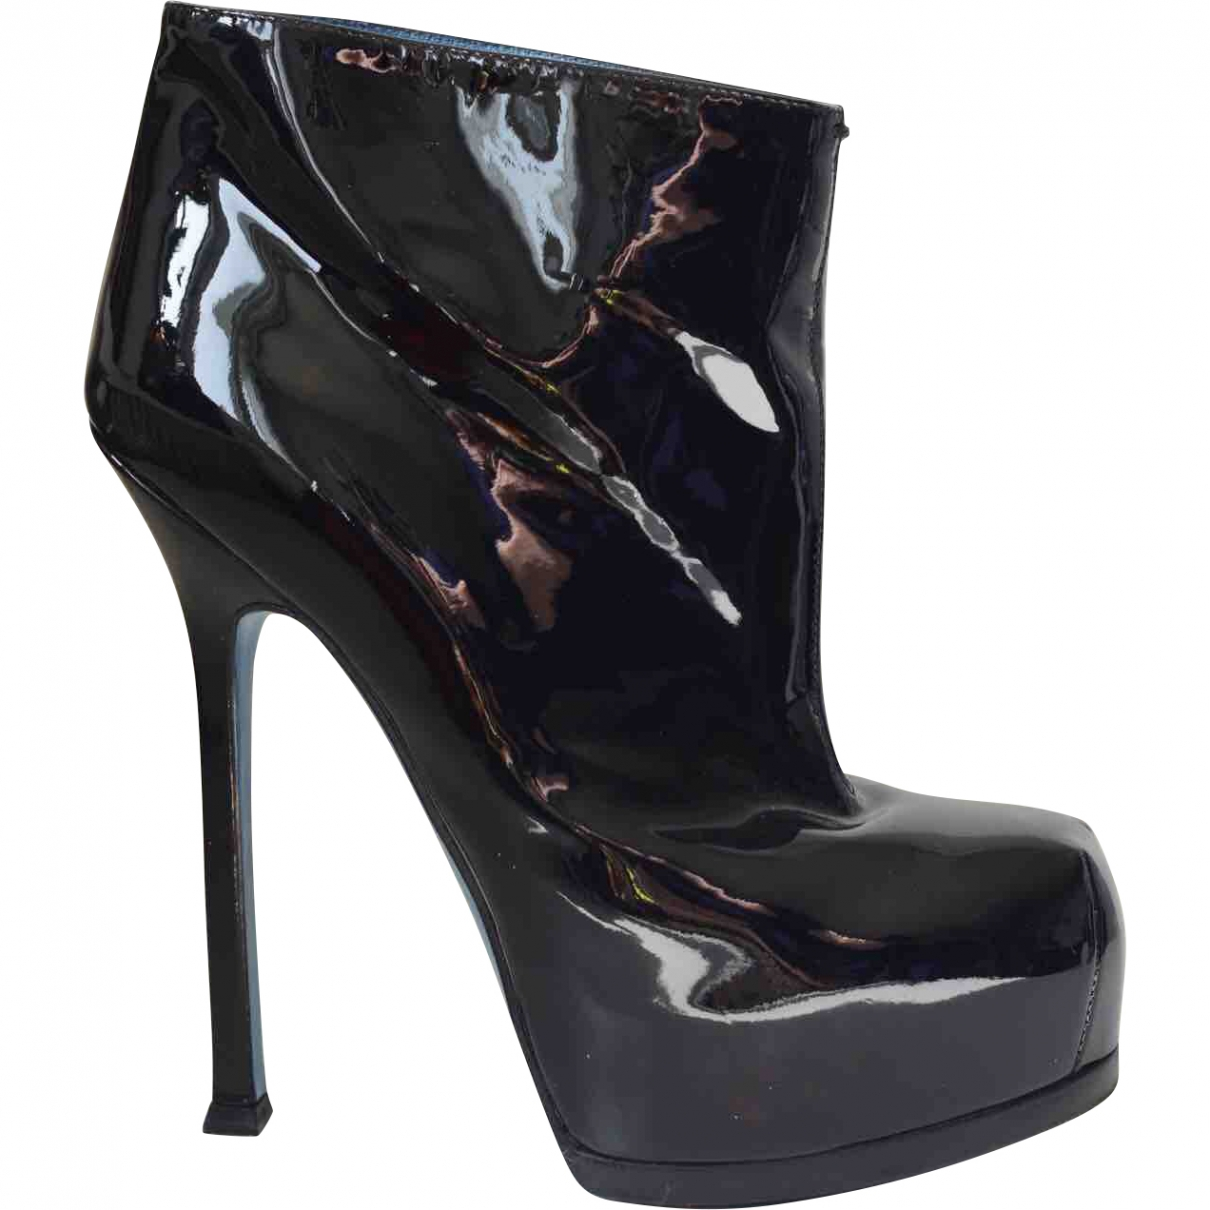 Yves Saint Laurent \N Black Patent leather Ankle boots for Women 37 EU